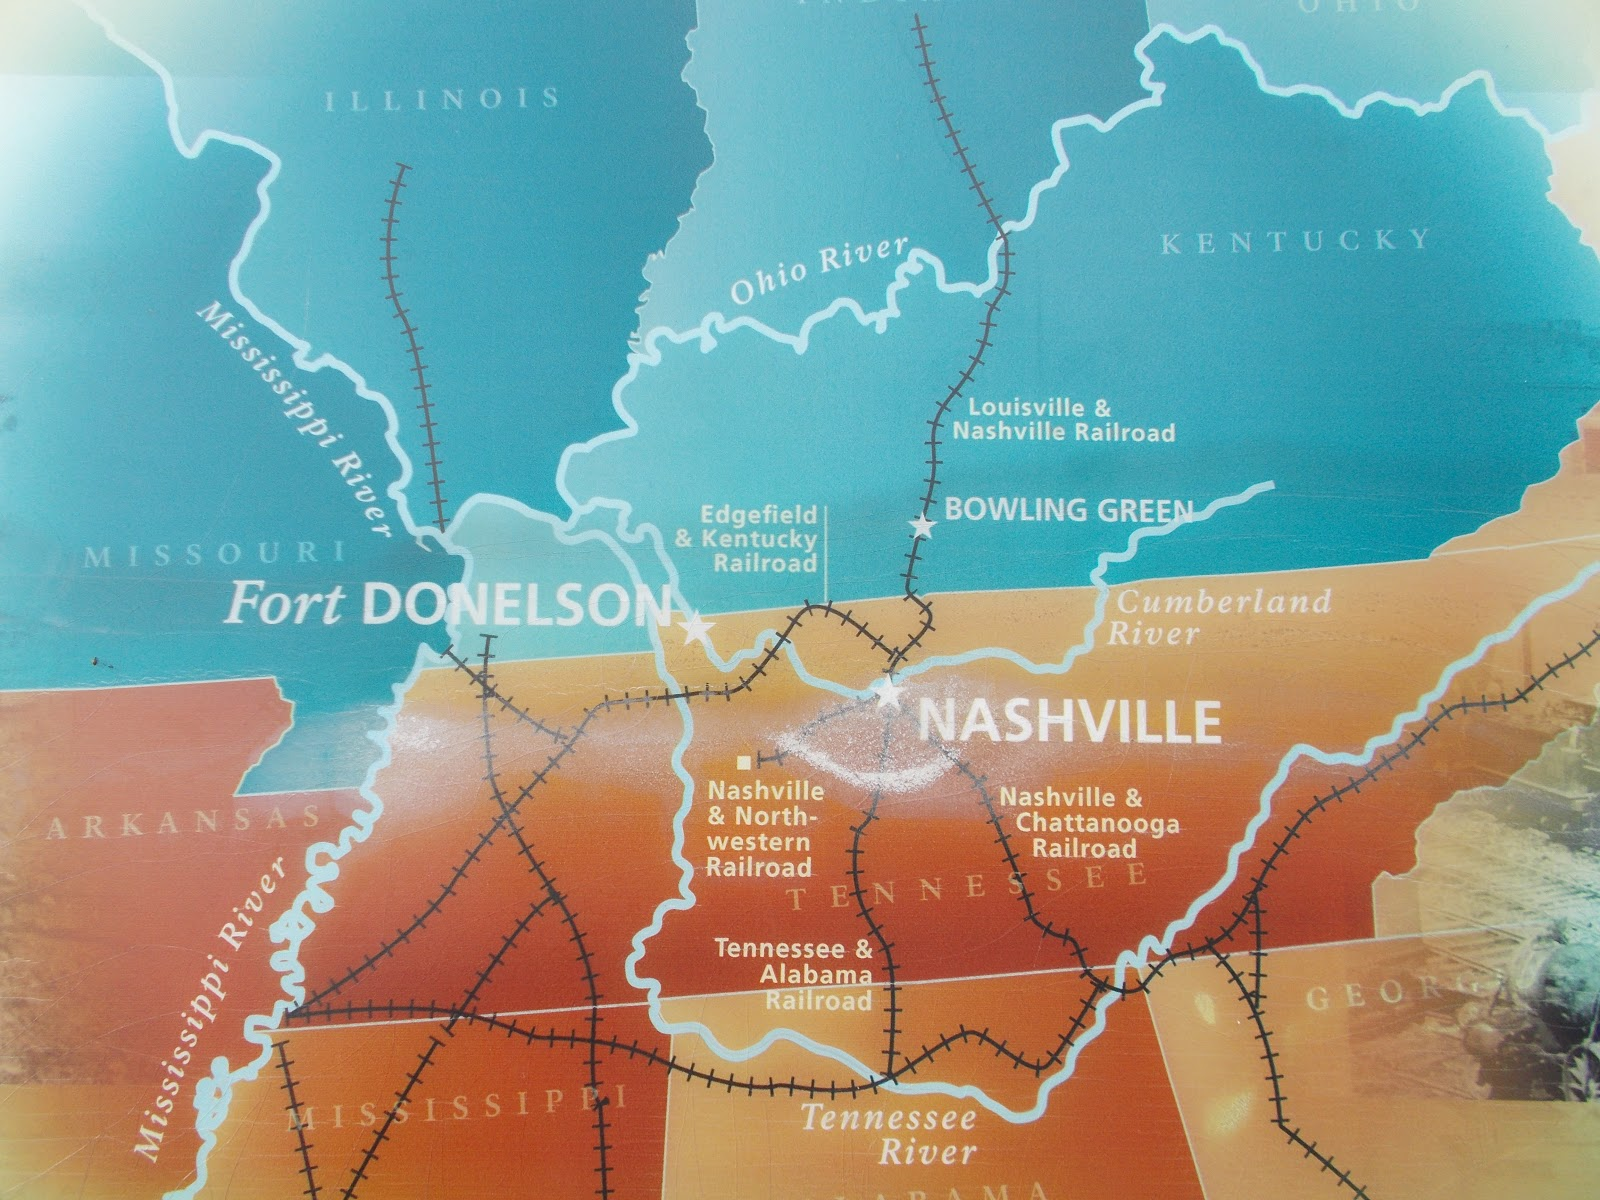 Tarras Travels Grand River Kentucky to Fort Donelson Tennessee